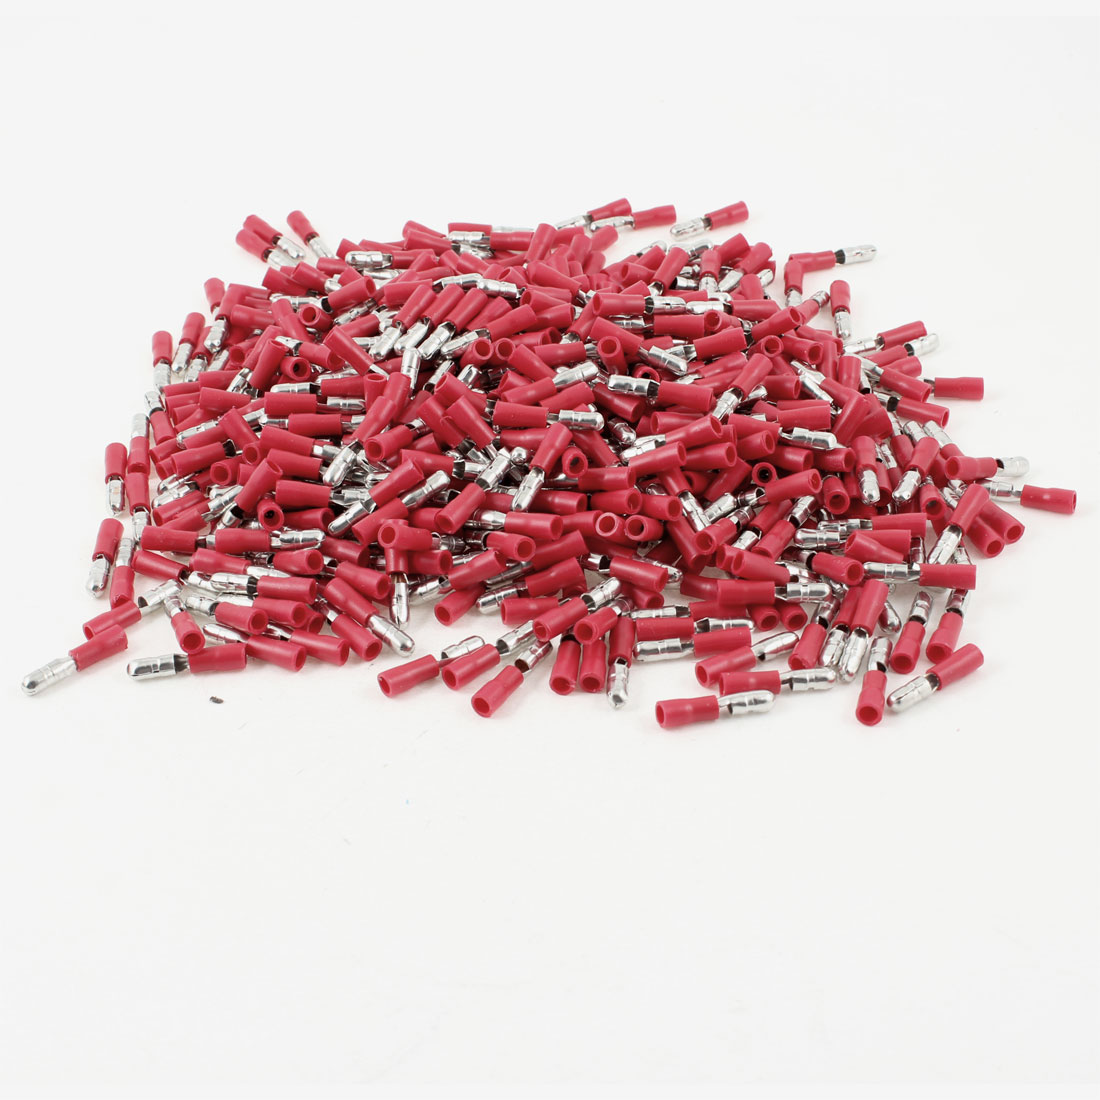 1000 Pcs Red Wire Connector Insulating Crimp Terminals Cable Lug for 16-14 AWG